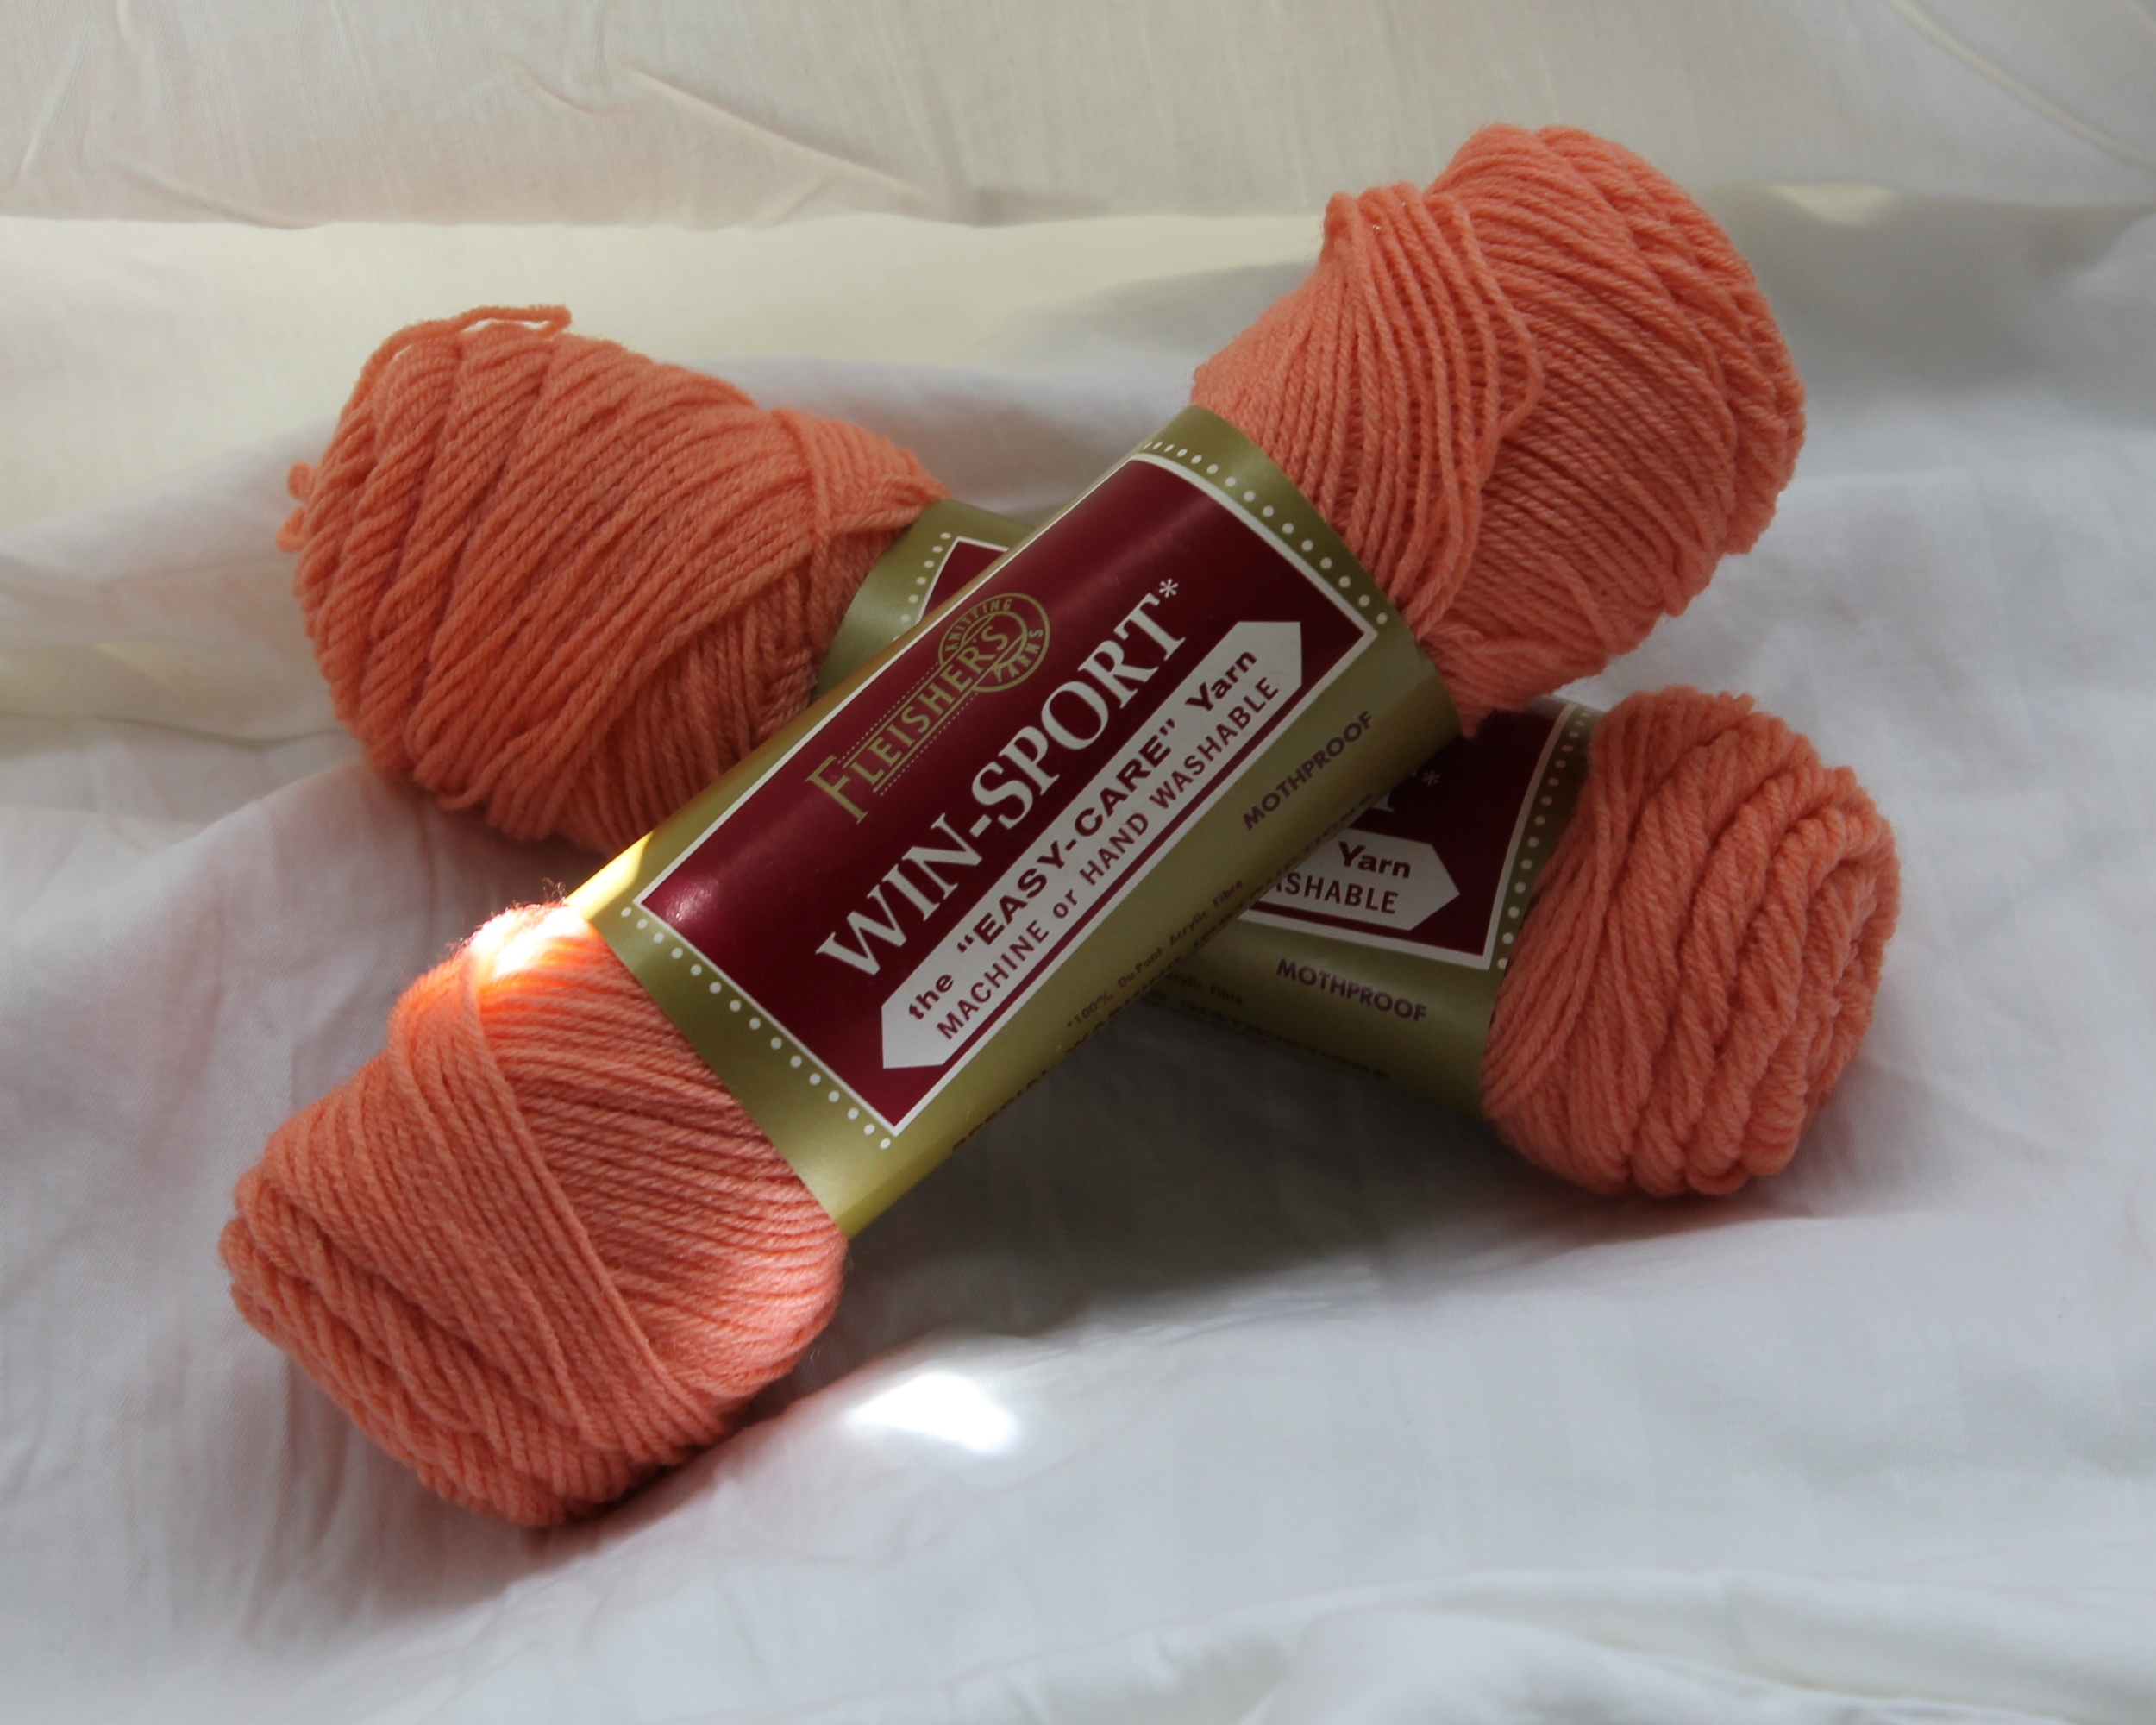 Two coral colored skeins of yarn